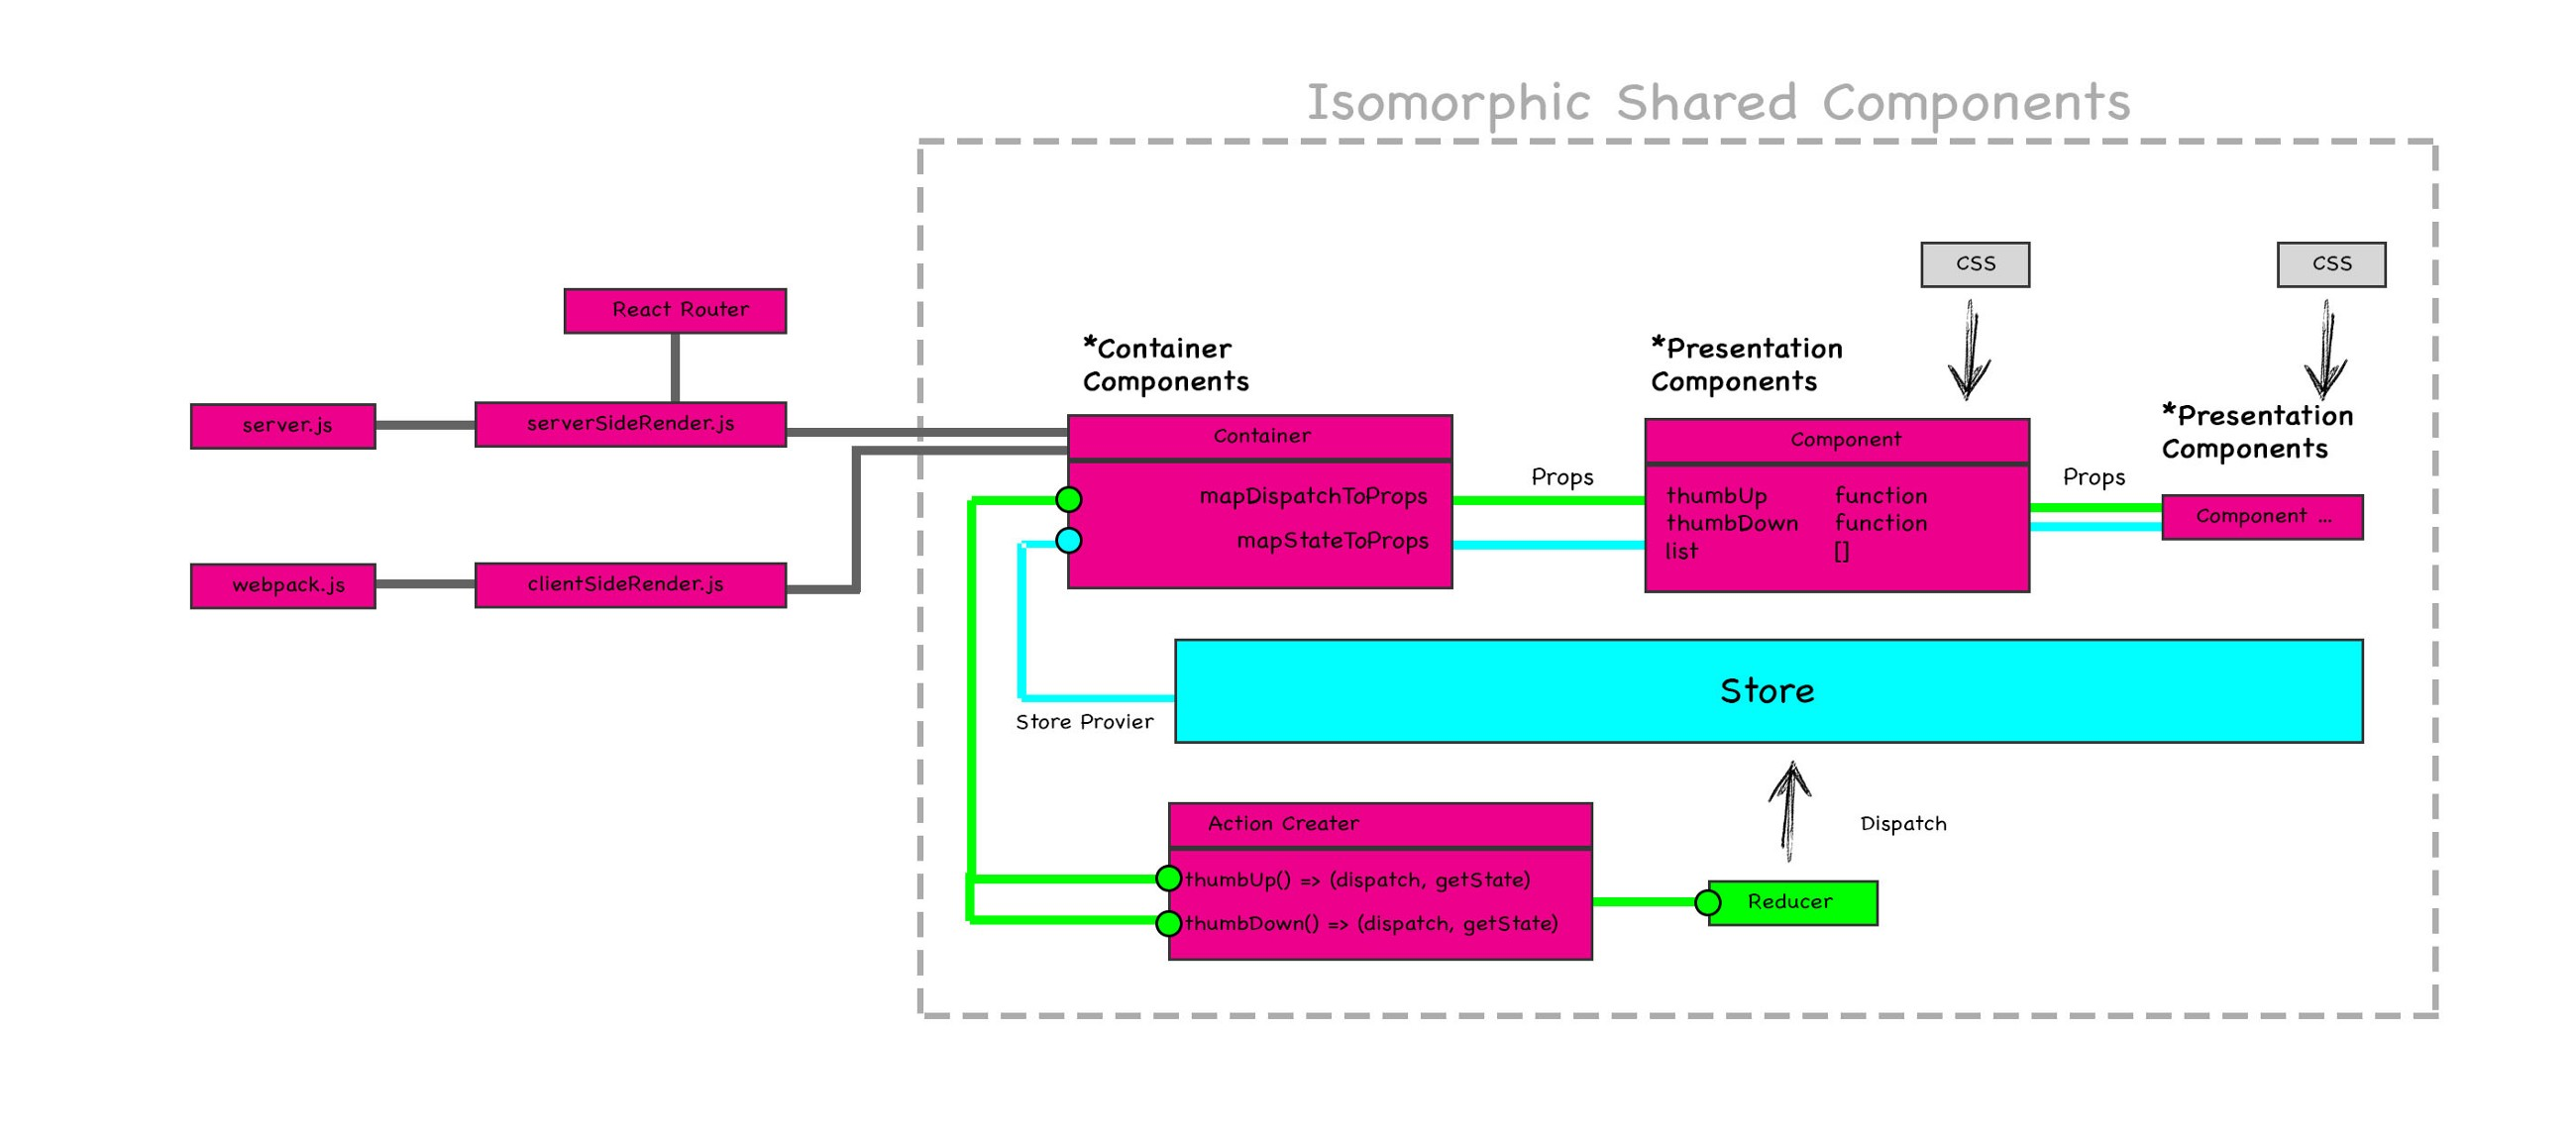 /react-redux-isomorphic-boilerplate-best-practice-example-tutorial-learning-rendering-reducer-action-8a448d0dbddb feature image